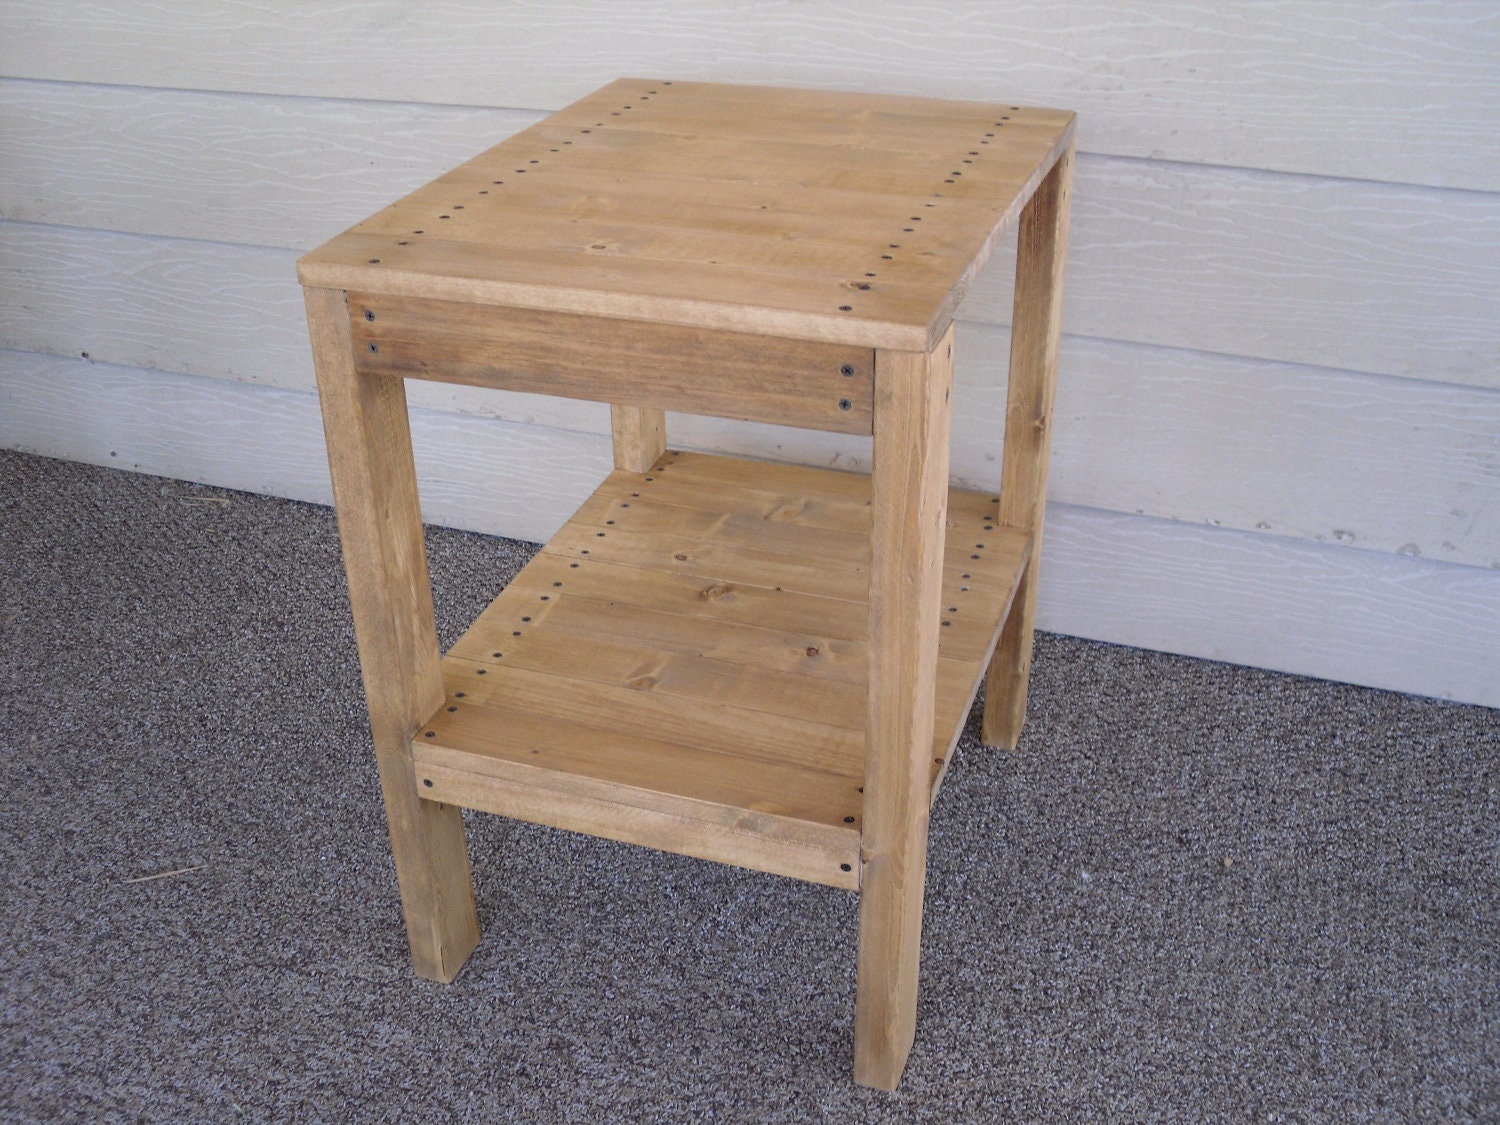 DIY PLANS to make End Table Set Indoor/Outdoor by wingstoshop